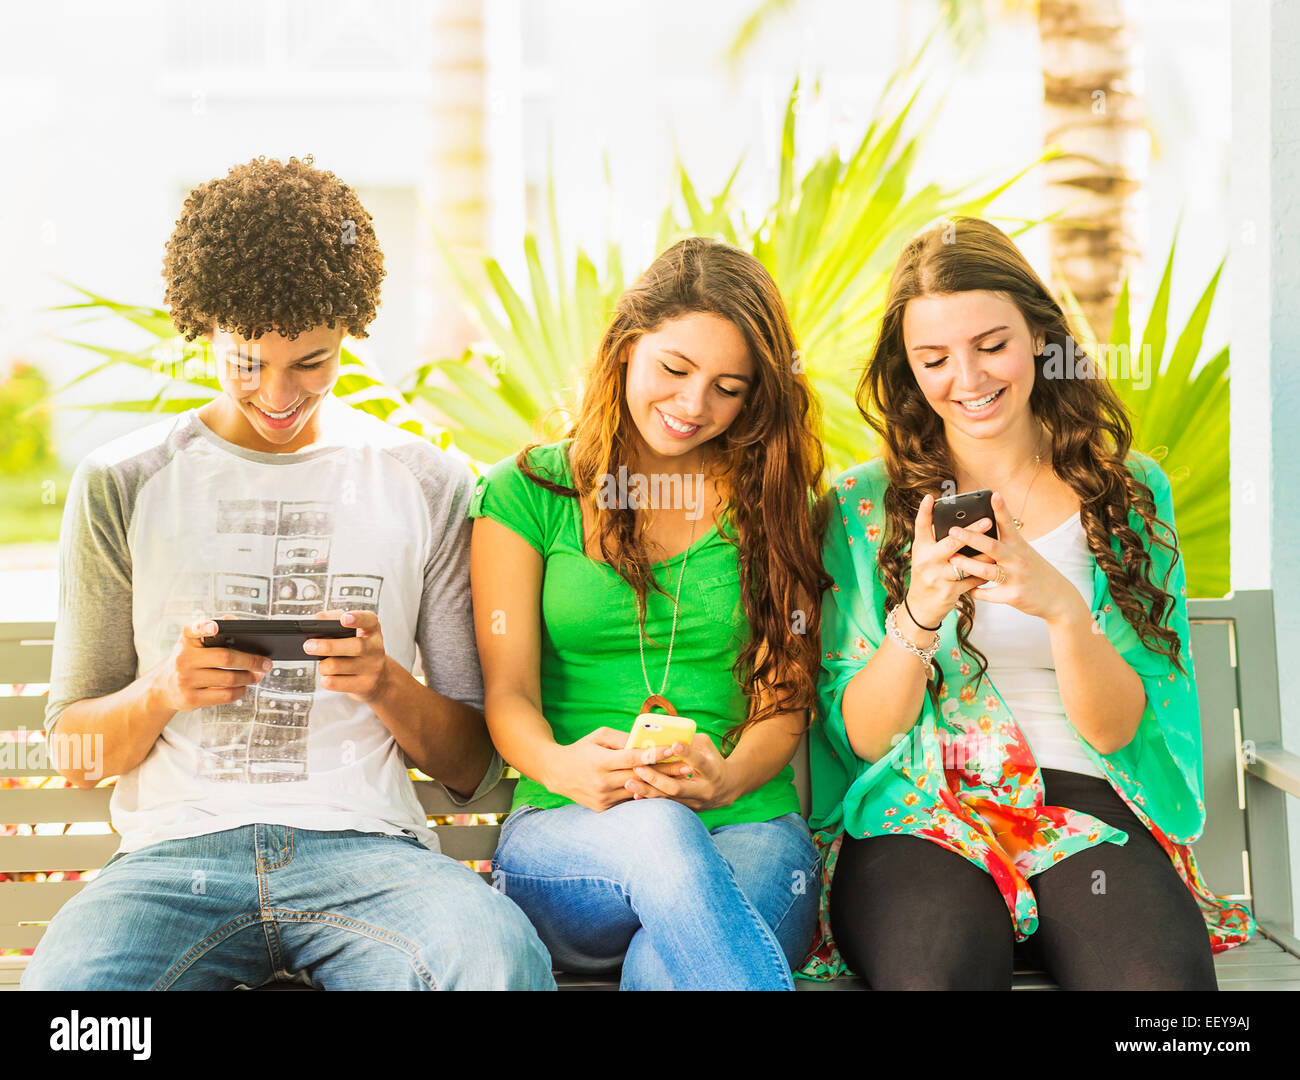 USA, Jupiter, Florida, Group of friends (14-15) sitting on bench and texting - Stock Image